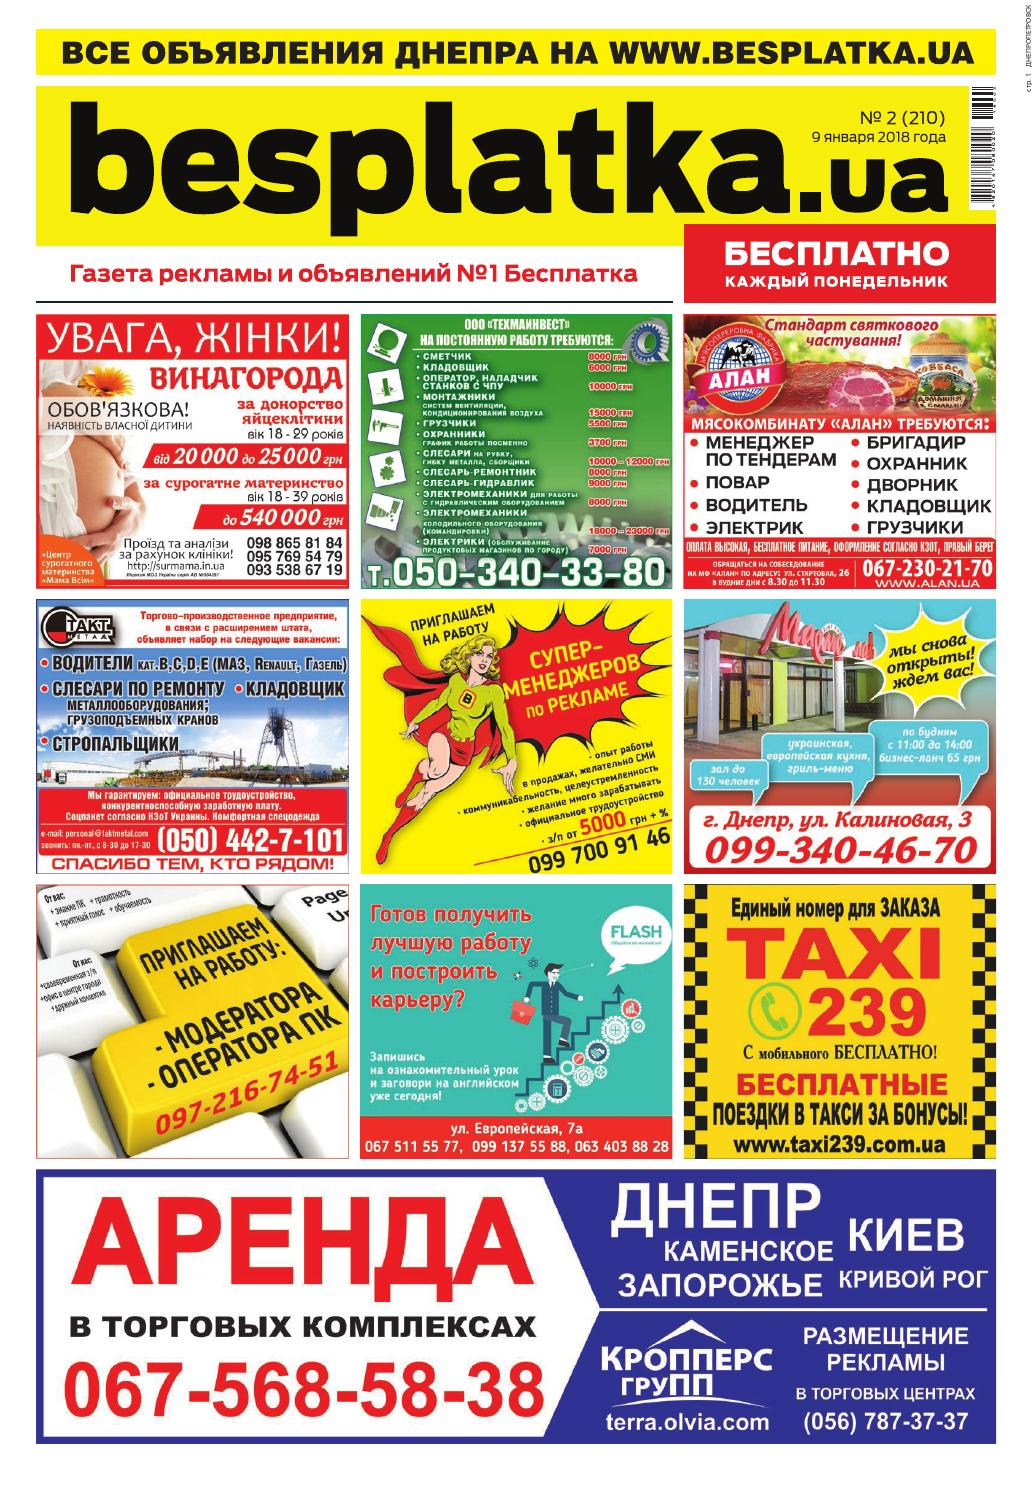 85fac8e15997e Besplatka #2 Днепр by besplatka ukraine - issuu